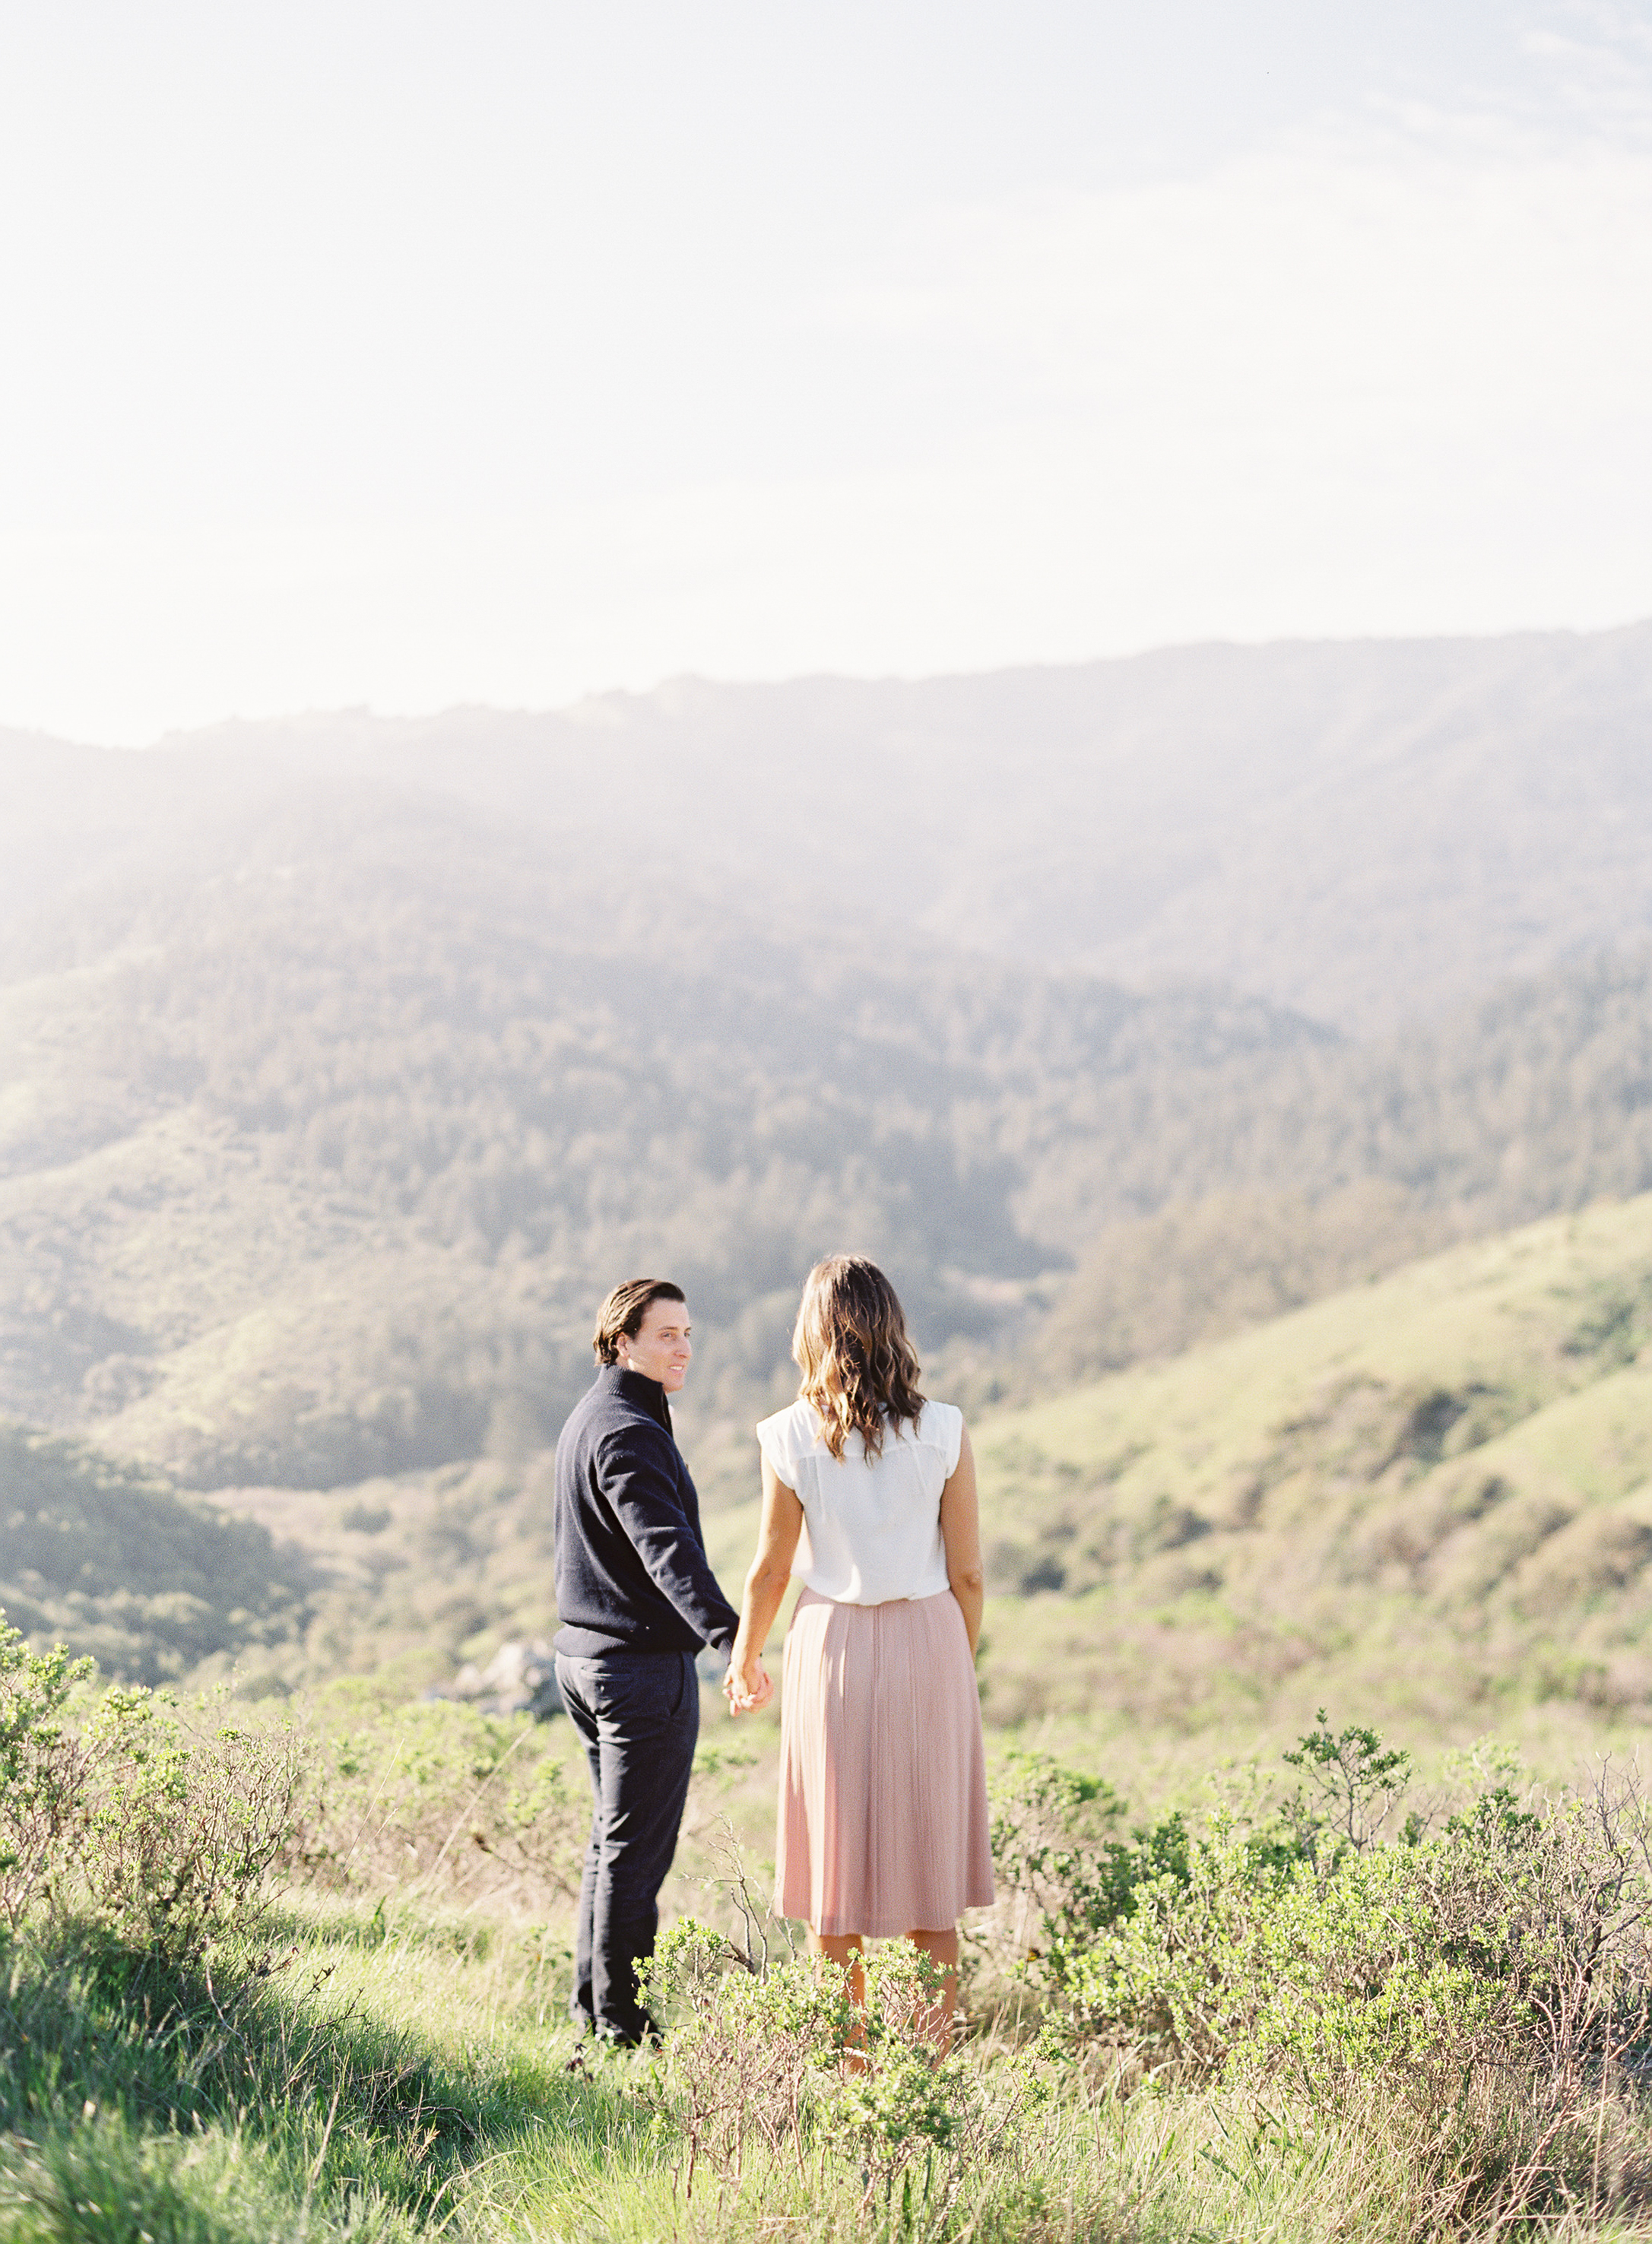 Meghan Mehan Photography - Fine Art Film Wedding Photography - San Francisco | Napa | Sonoma | Big Sur | Chicago | Minneapolis | Milwaukee | Lake Geneva | Door County | Wisconsin 003.jpg